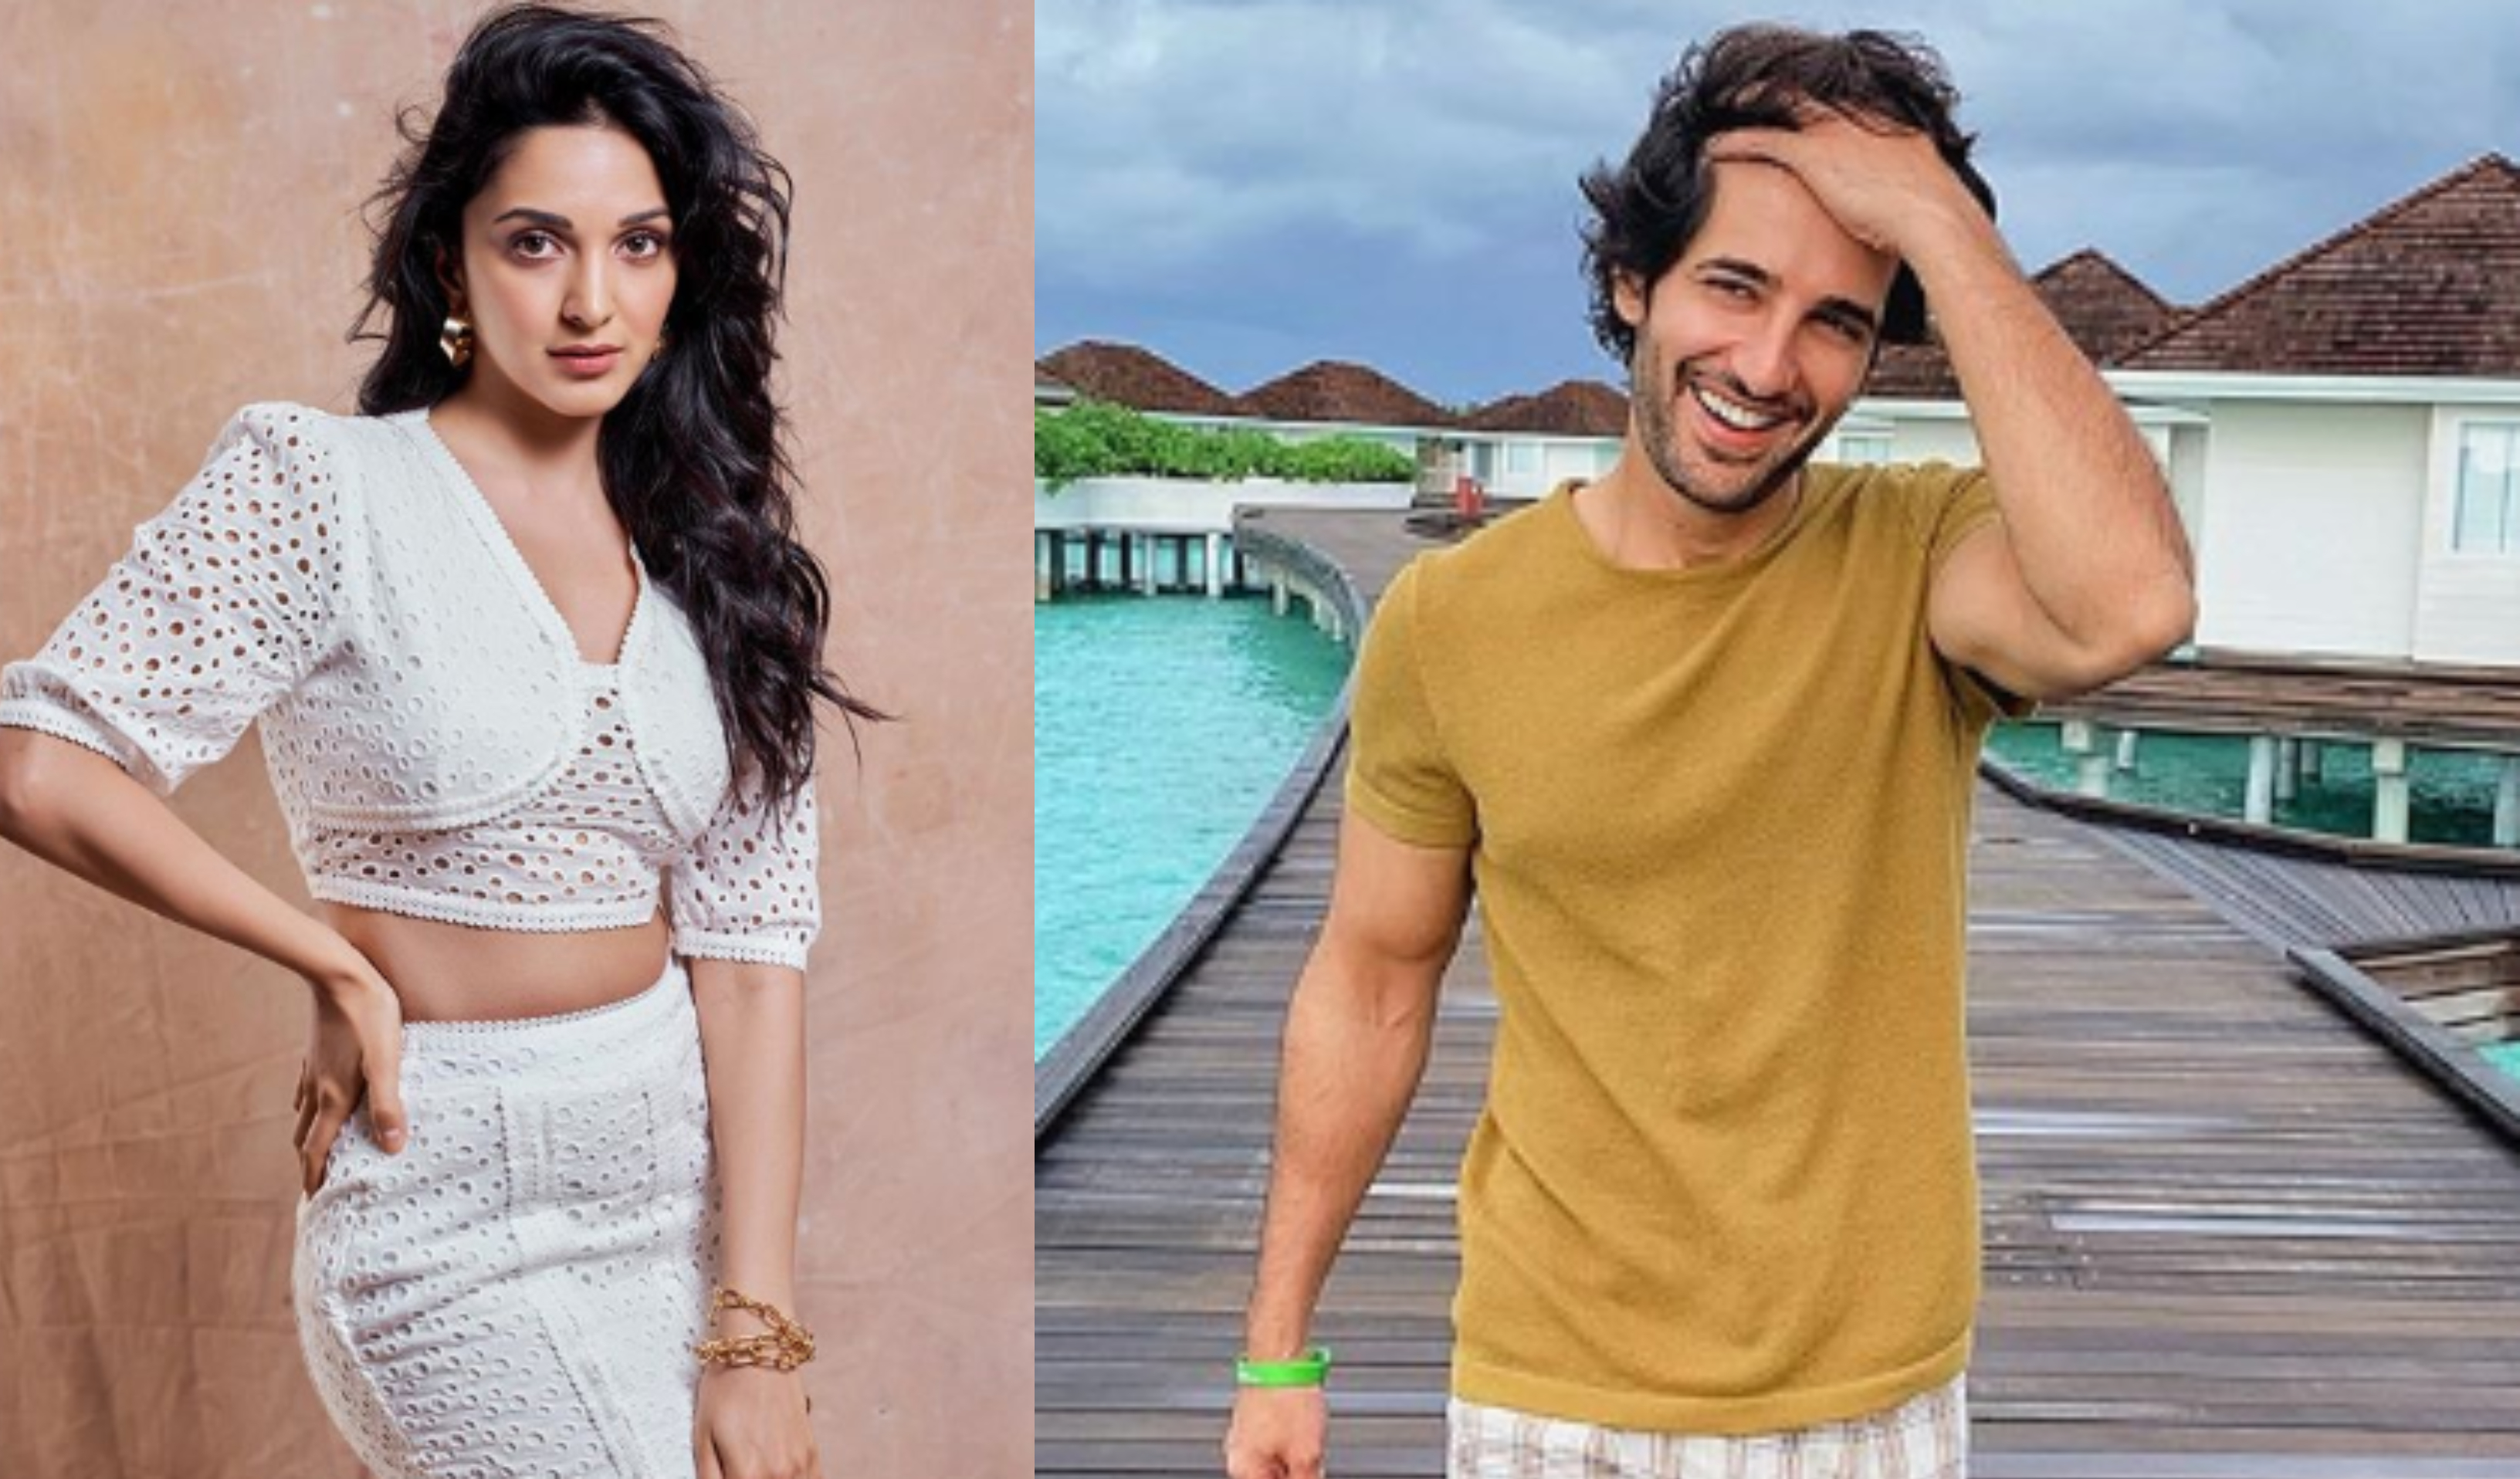 SOTY2' fame Aditya Seal to star opposite Kiara Advani in 'Indoo Ki ...